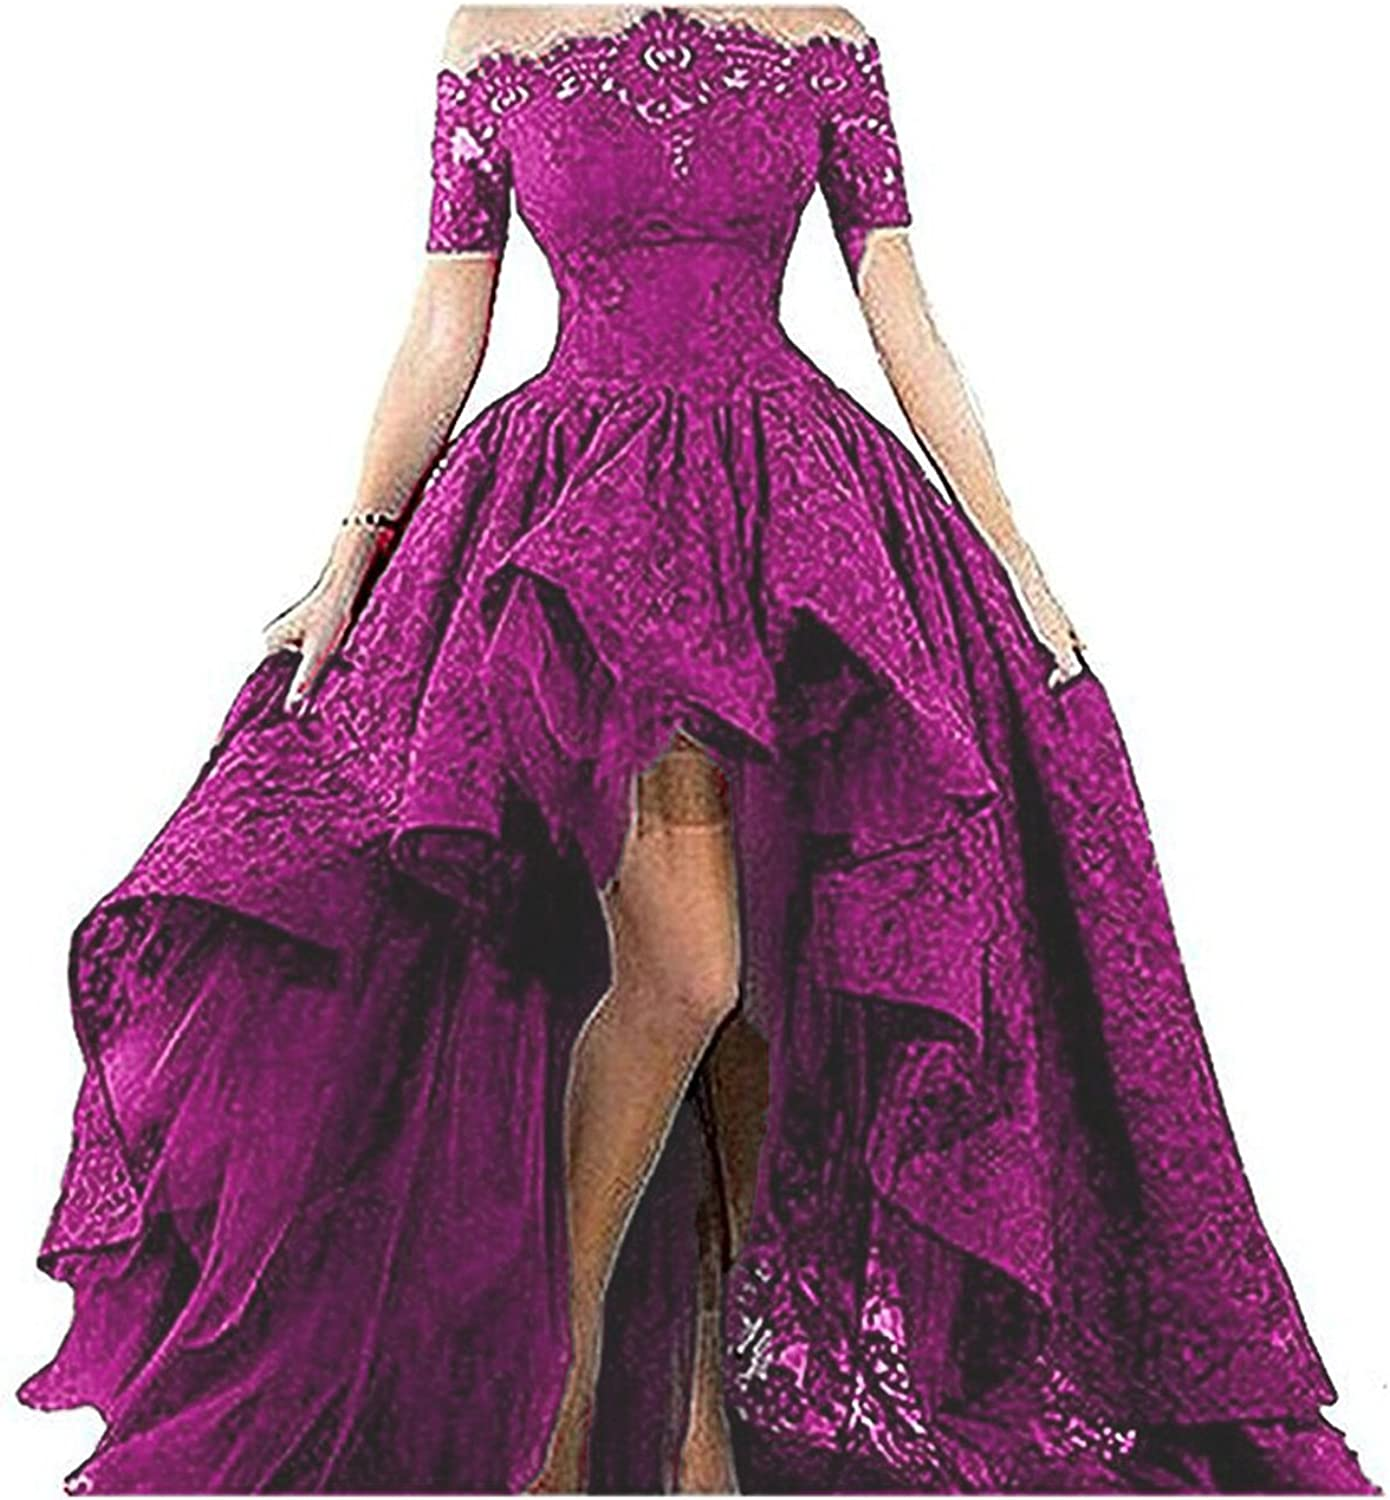 BEALEGAN Lady Women's Short Sleeves High Low Lace Prom Formal Evening Gown